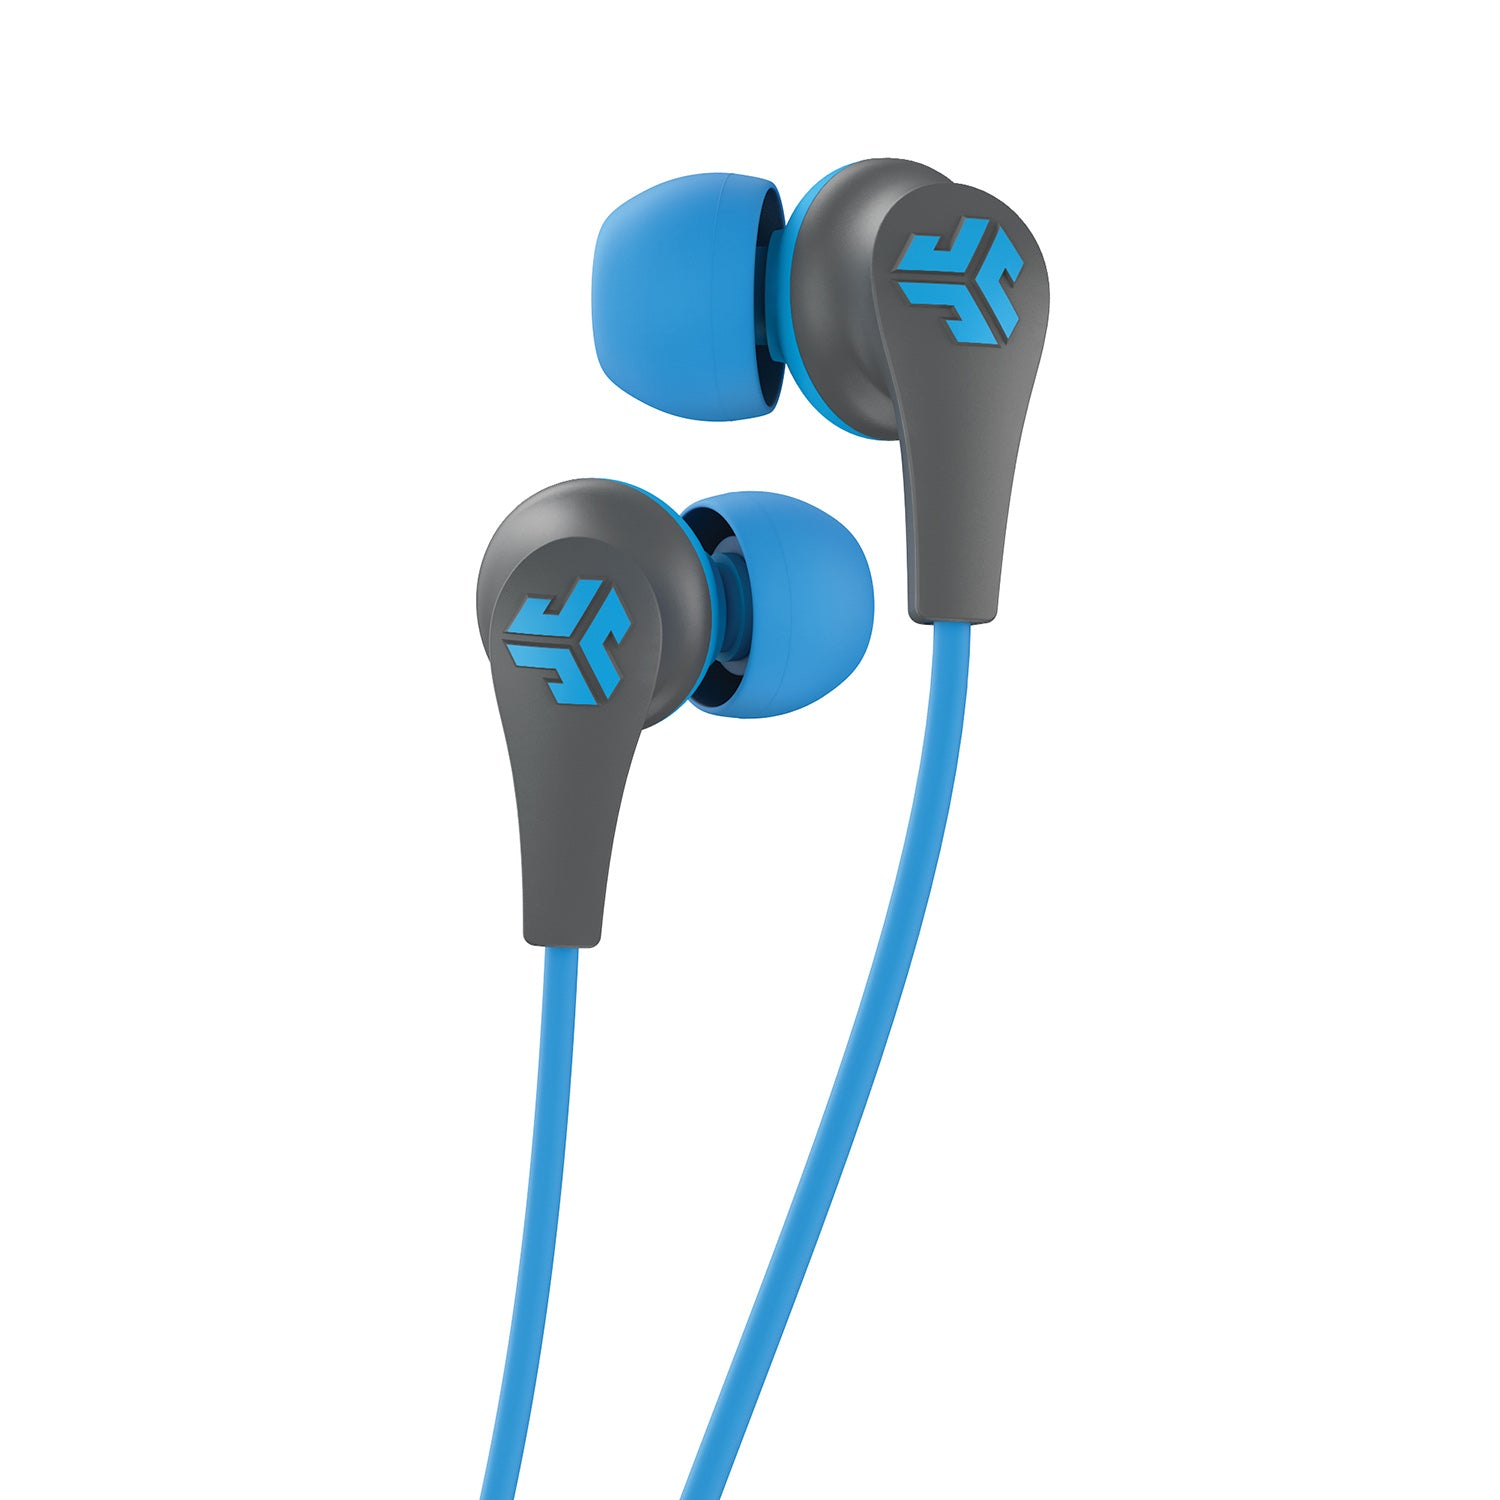 Iphone earbuds with microphone iphone 8 - iphone 8 earbuds blue